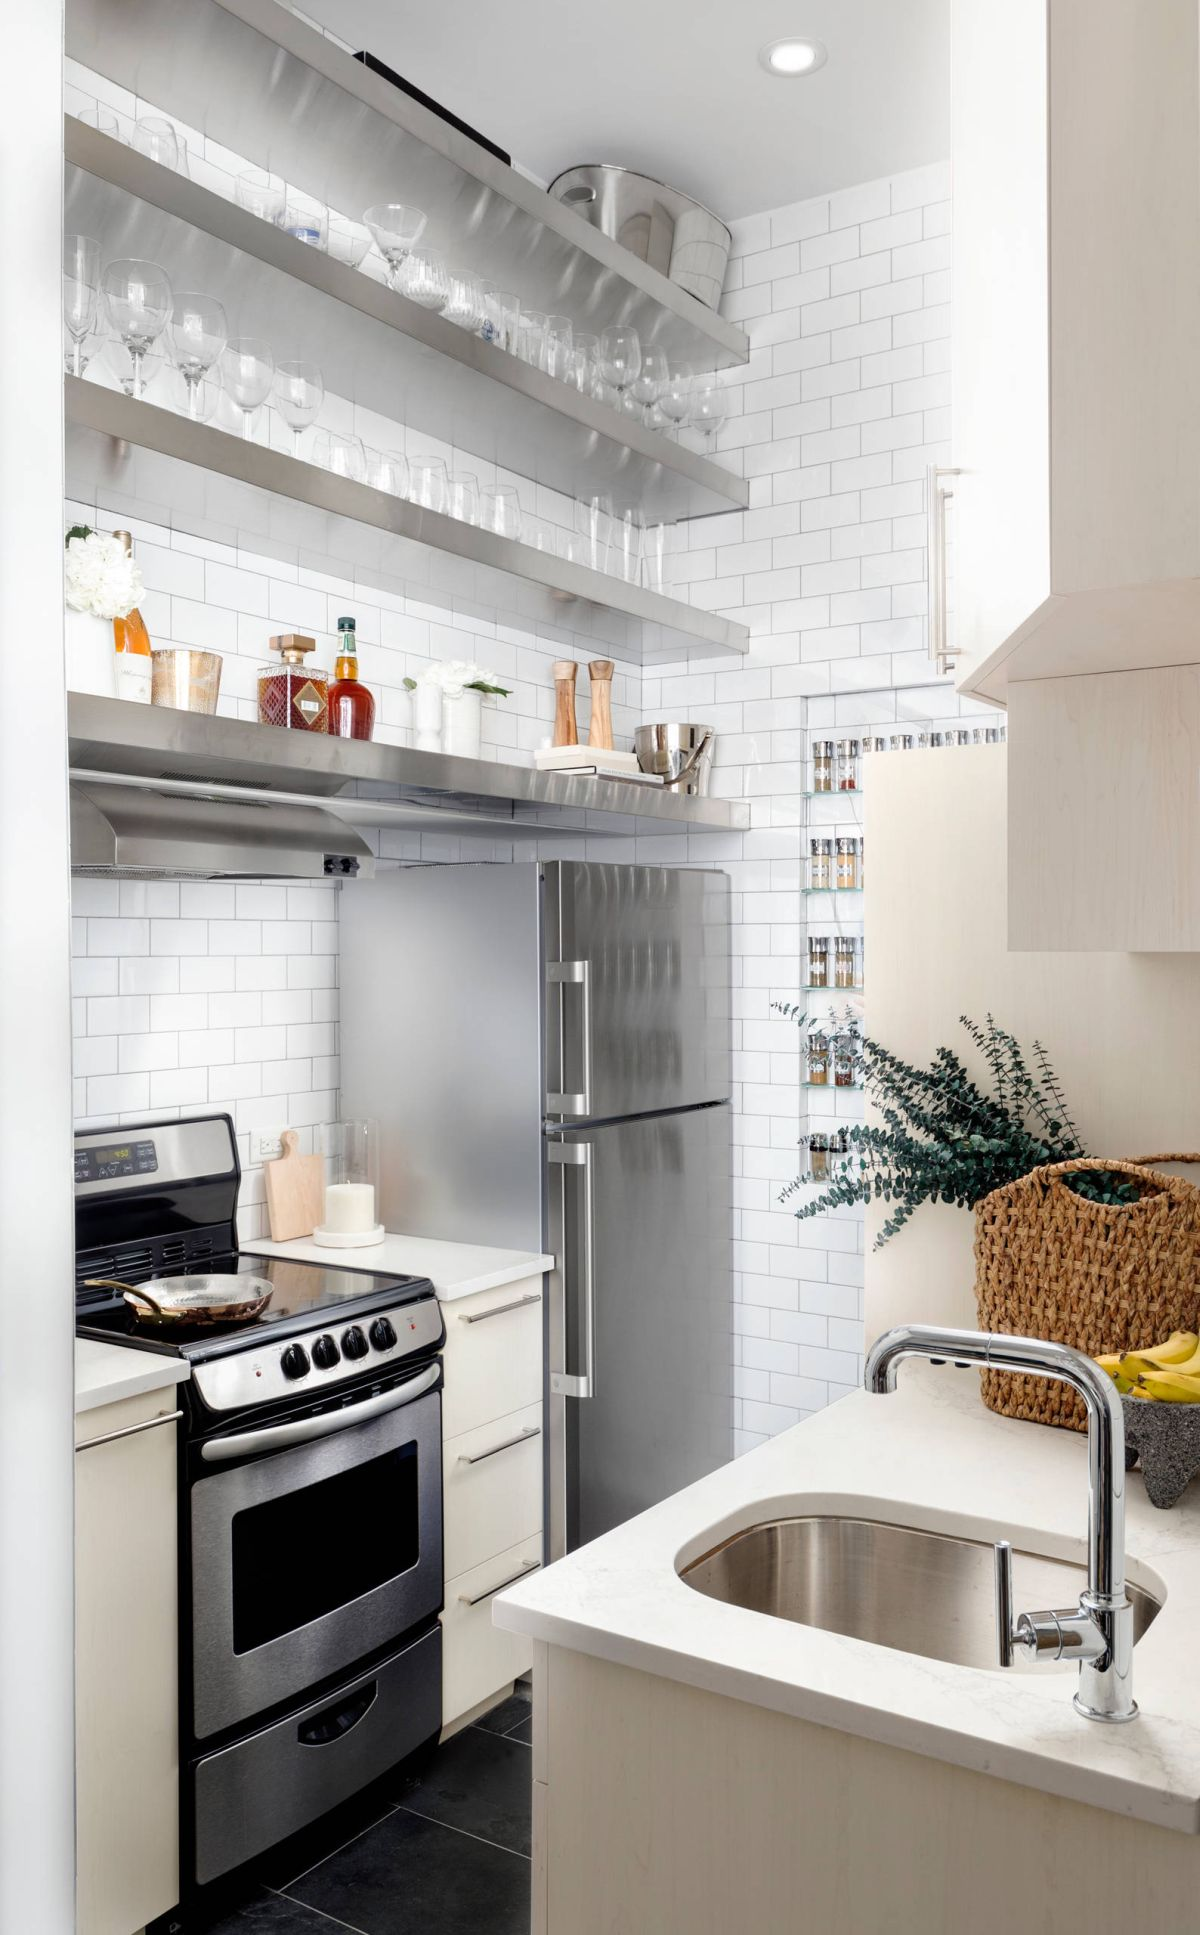 12 Tips To Make The Most Your Galley Kitchen